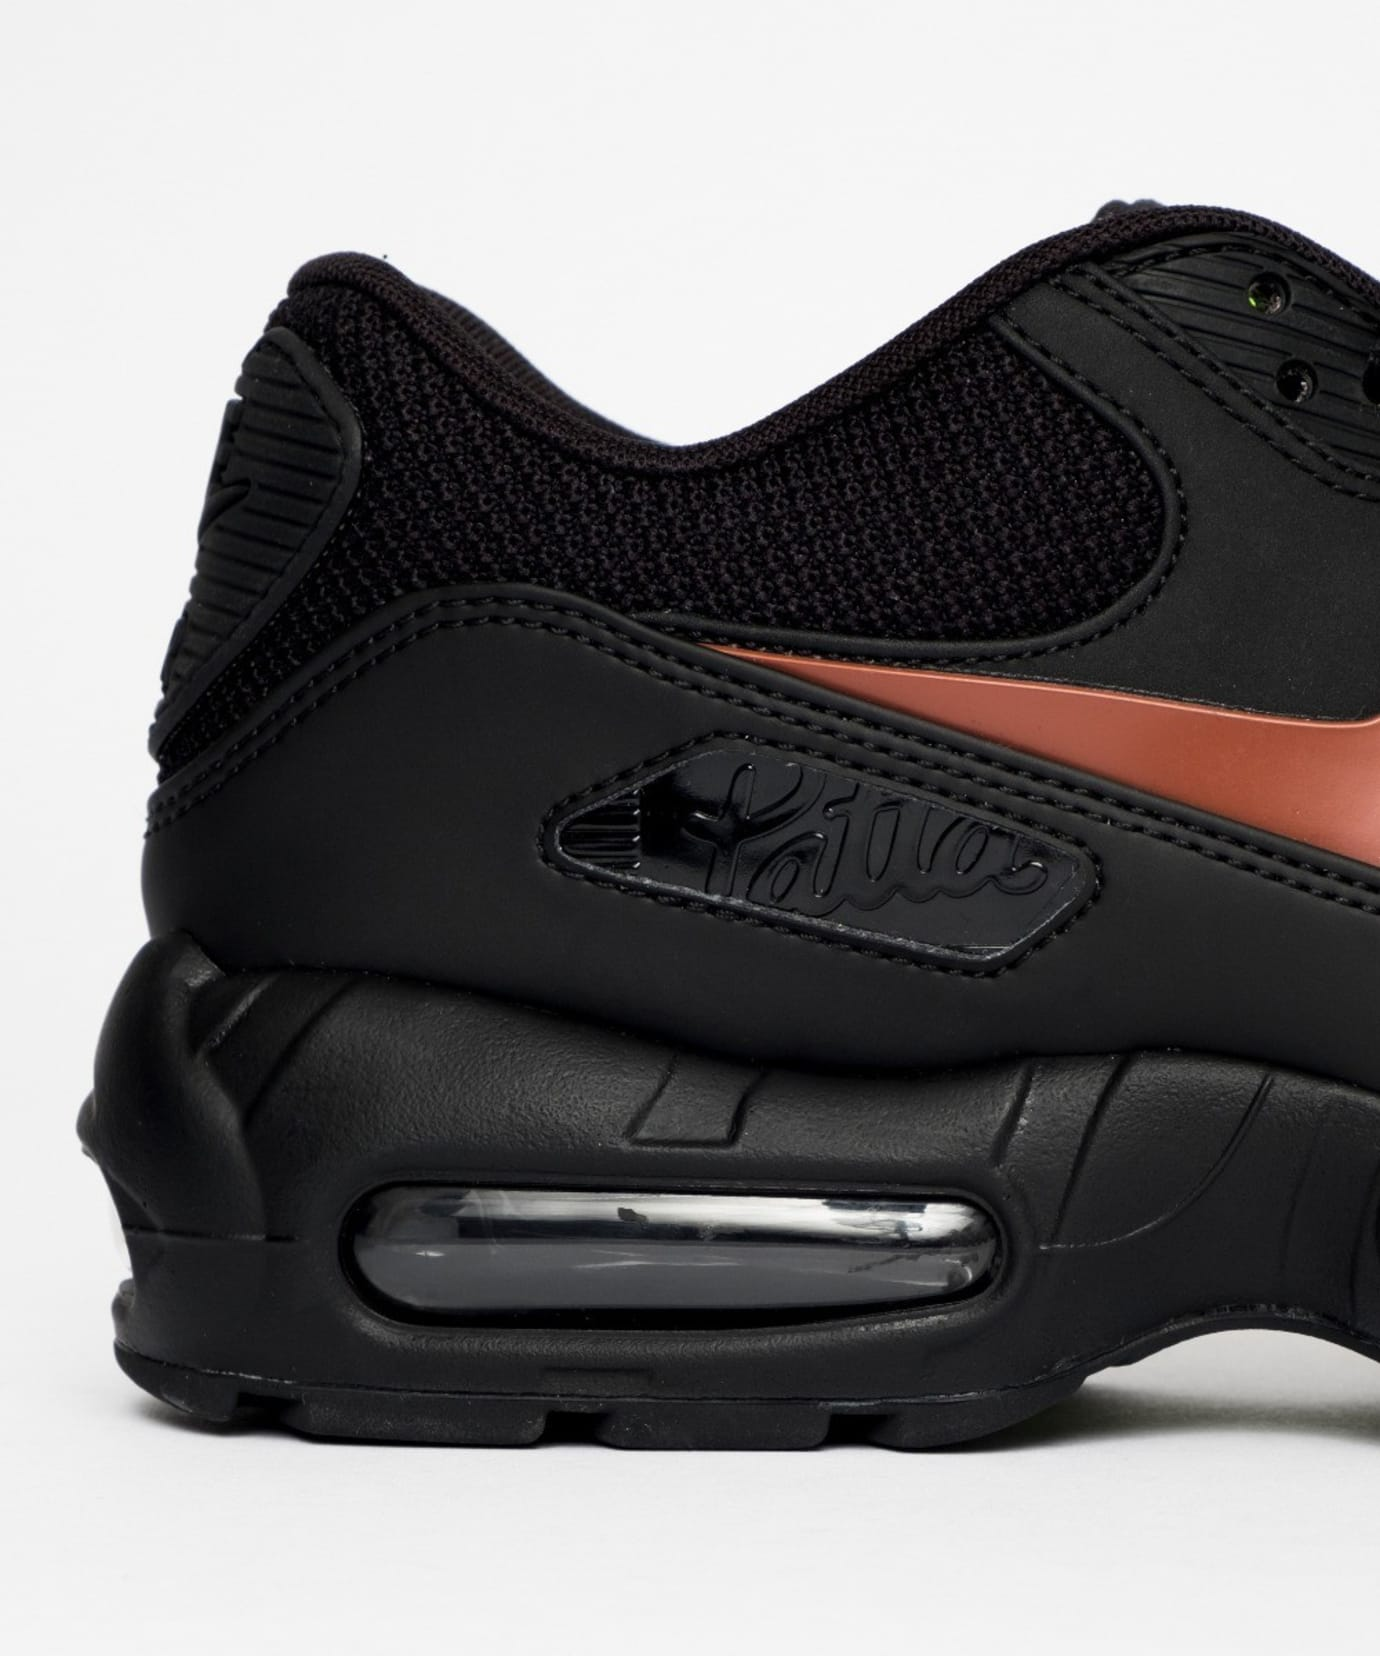 Image via Patta Patta x Nike Air Max 90 x 95  Black  CJ4741-001 (Detail 7d4d07aaa